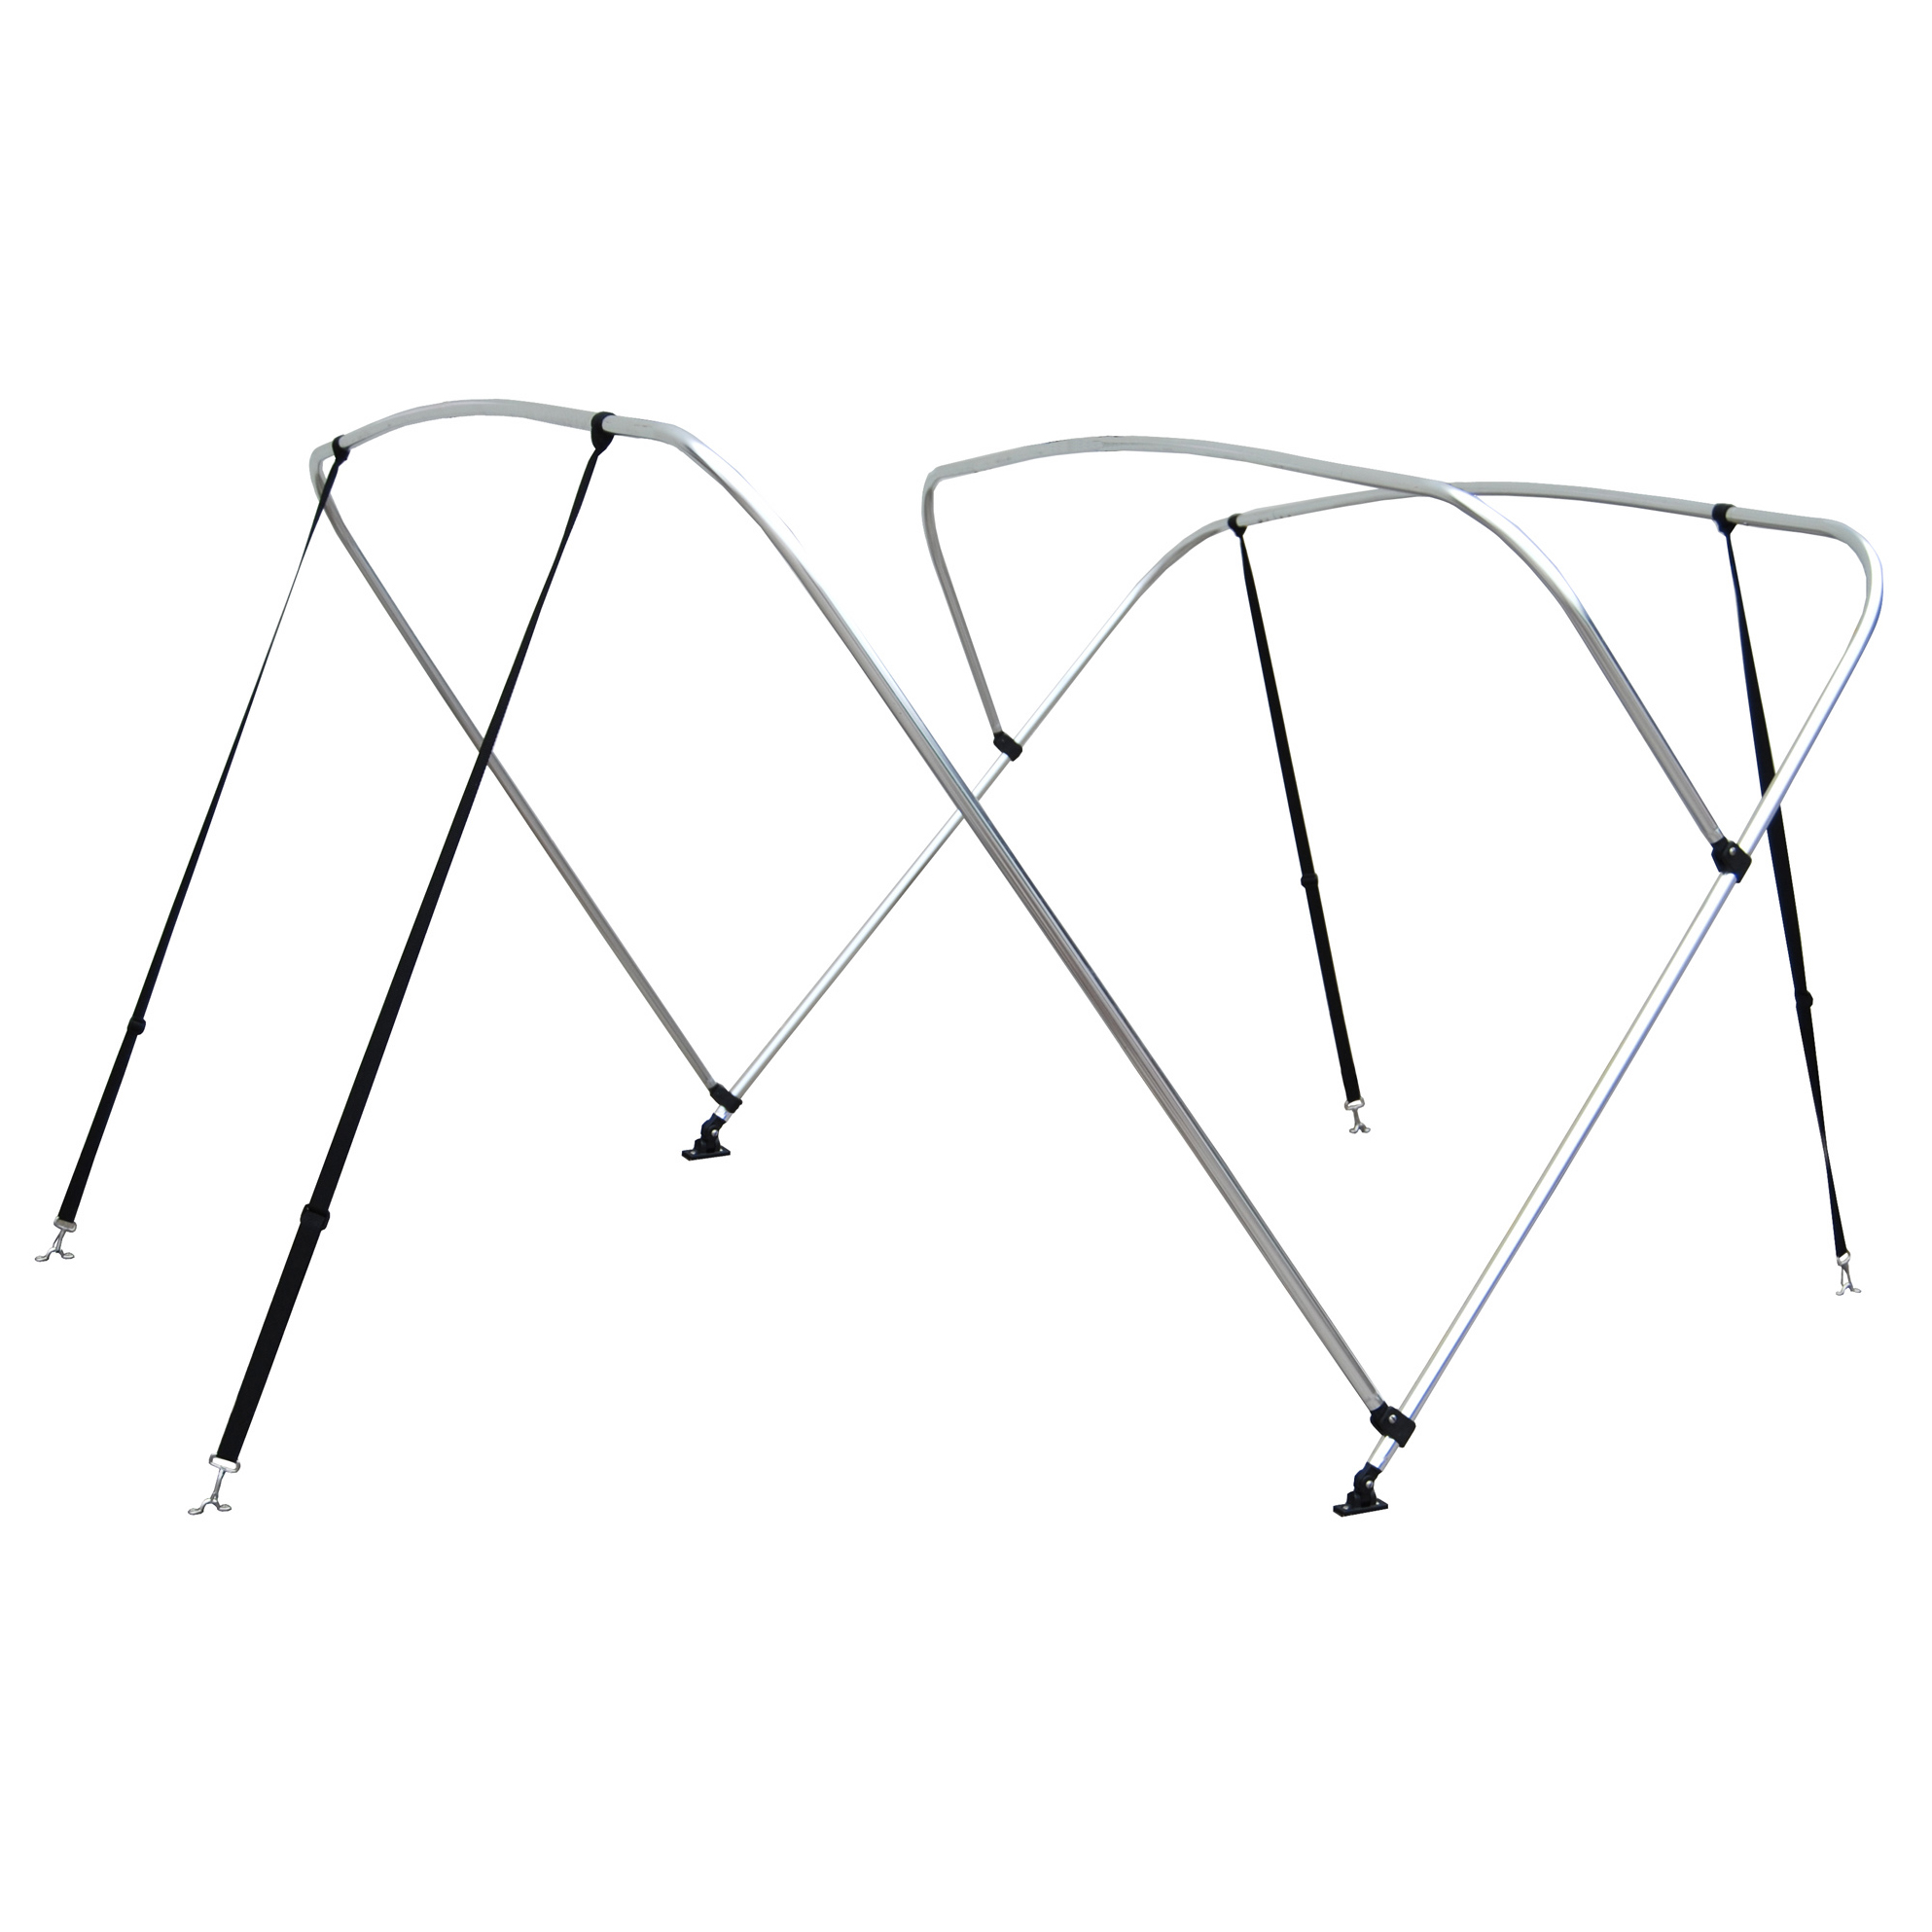 Shademate White Vinyl Stainless 4-Bow Bimini Top 8'L x 54''H 61''-66'' Wide